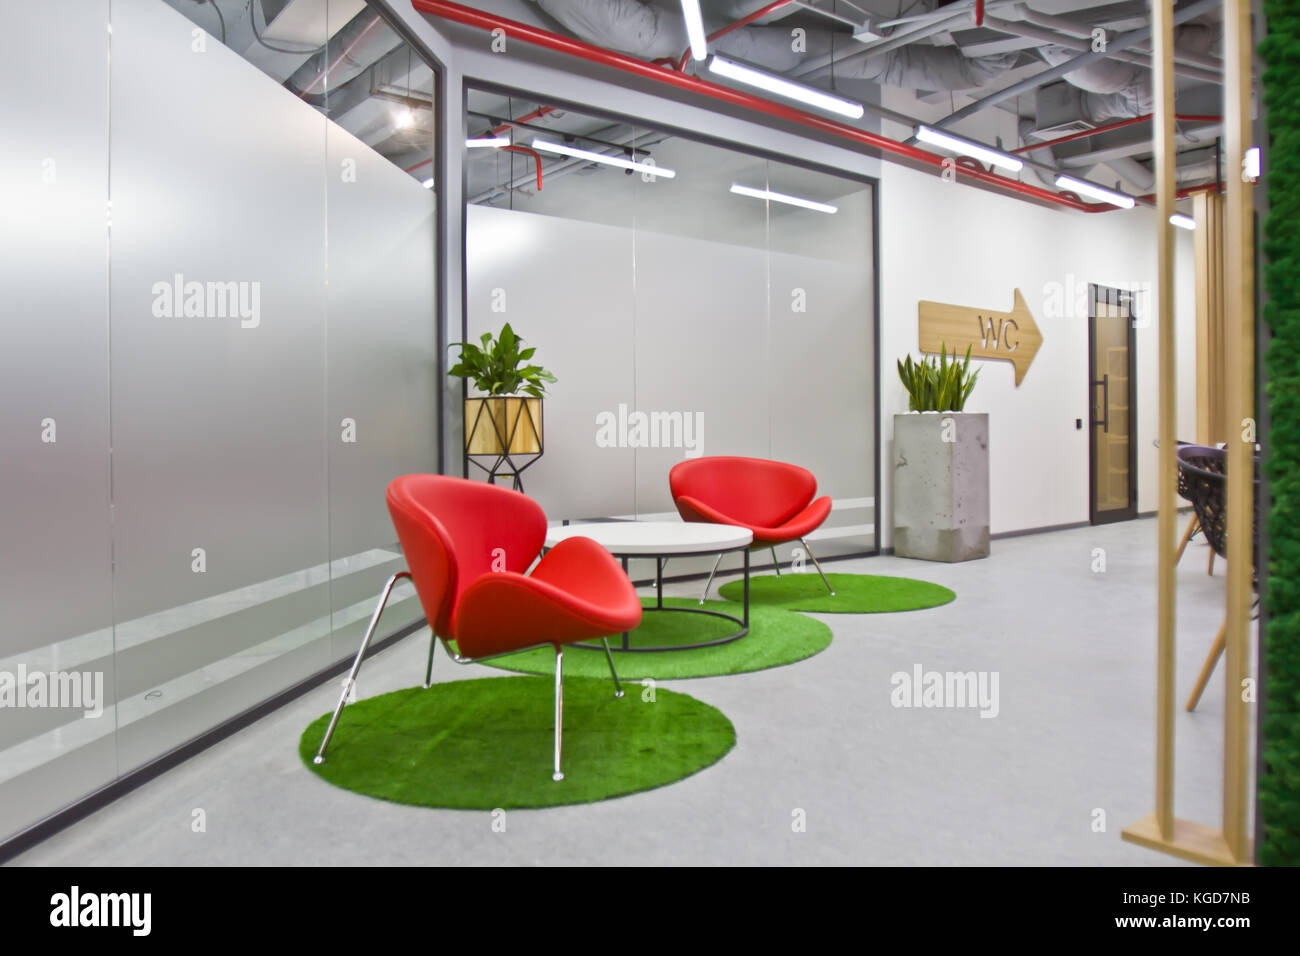 A Luxurious Sitting Area In A Small Office With A Modern Interior Stock Photo Alamy